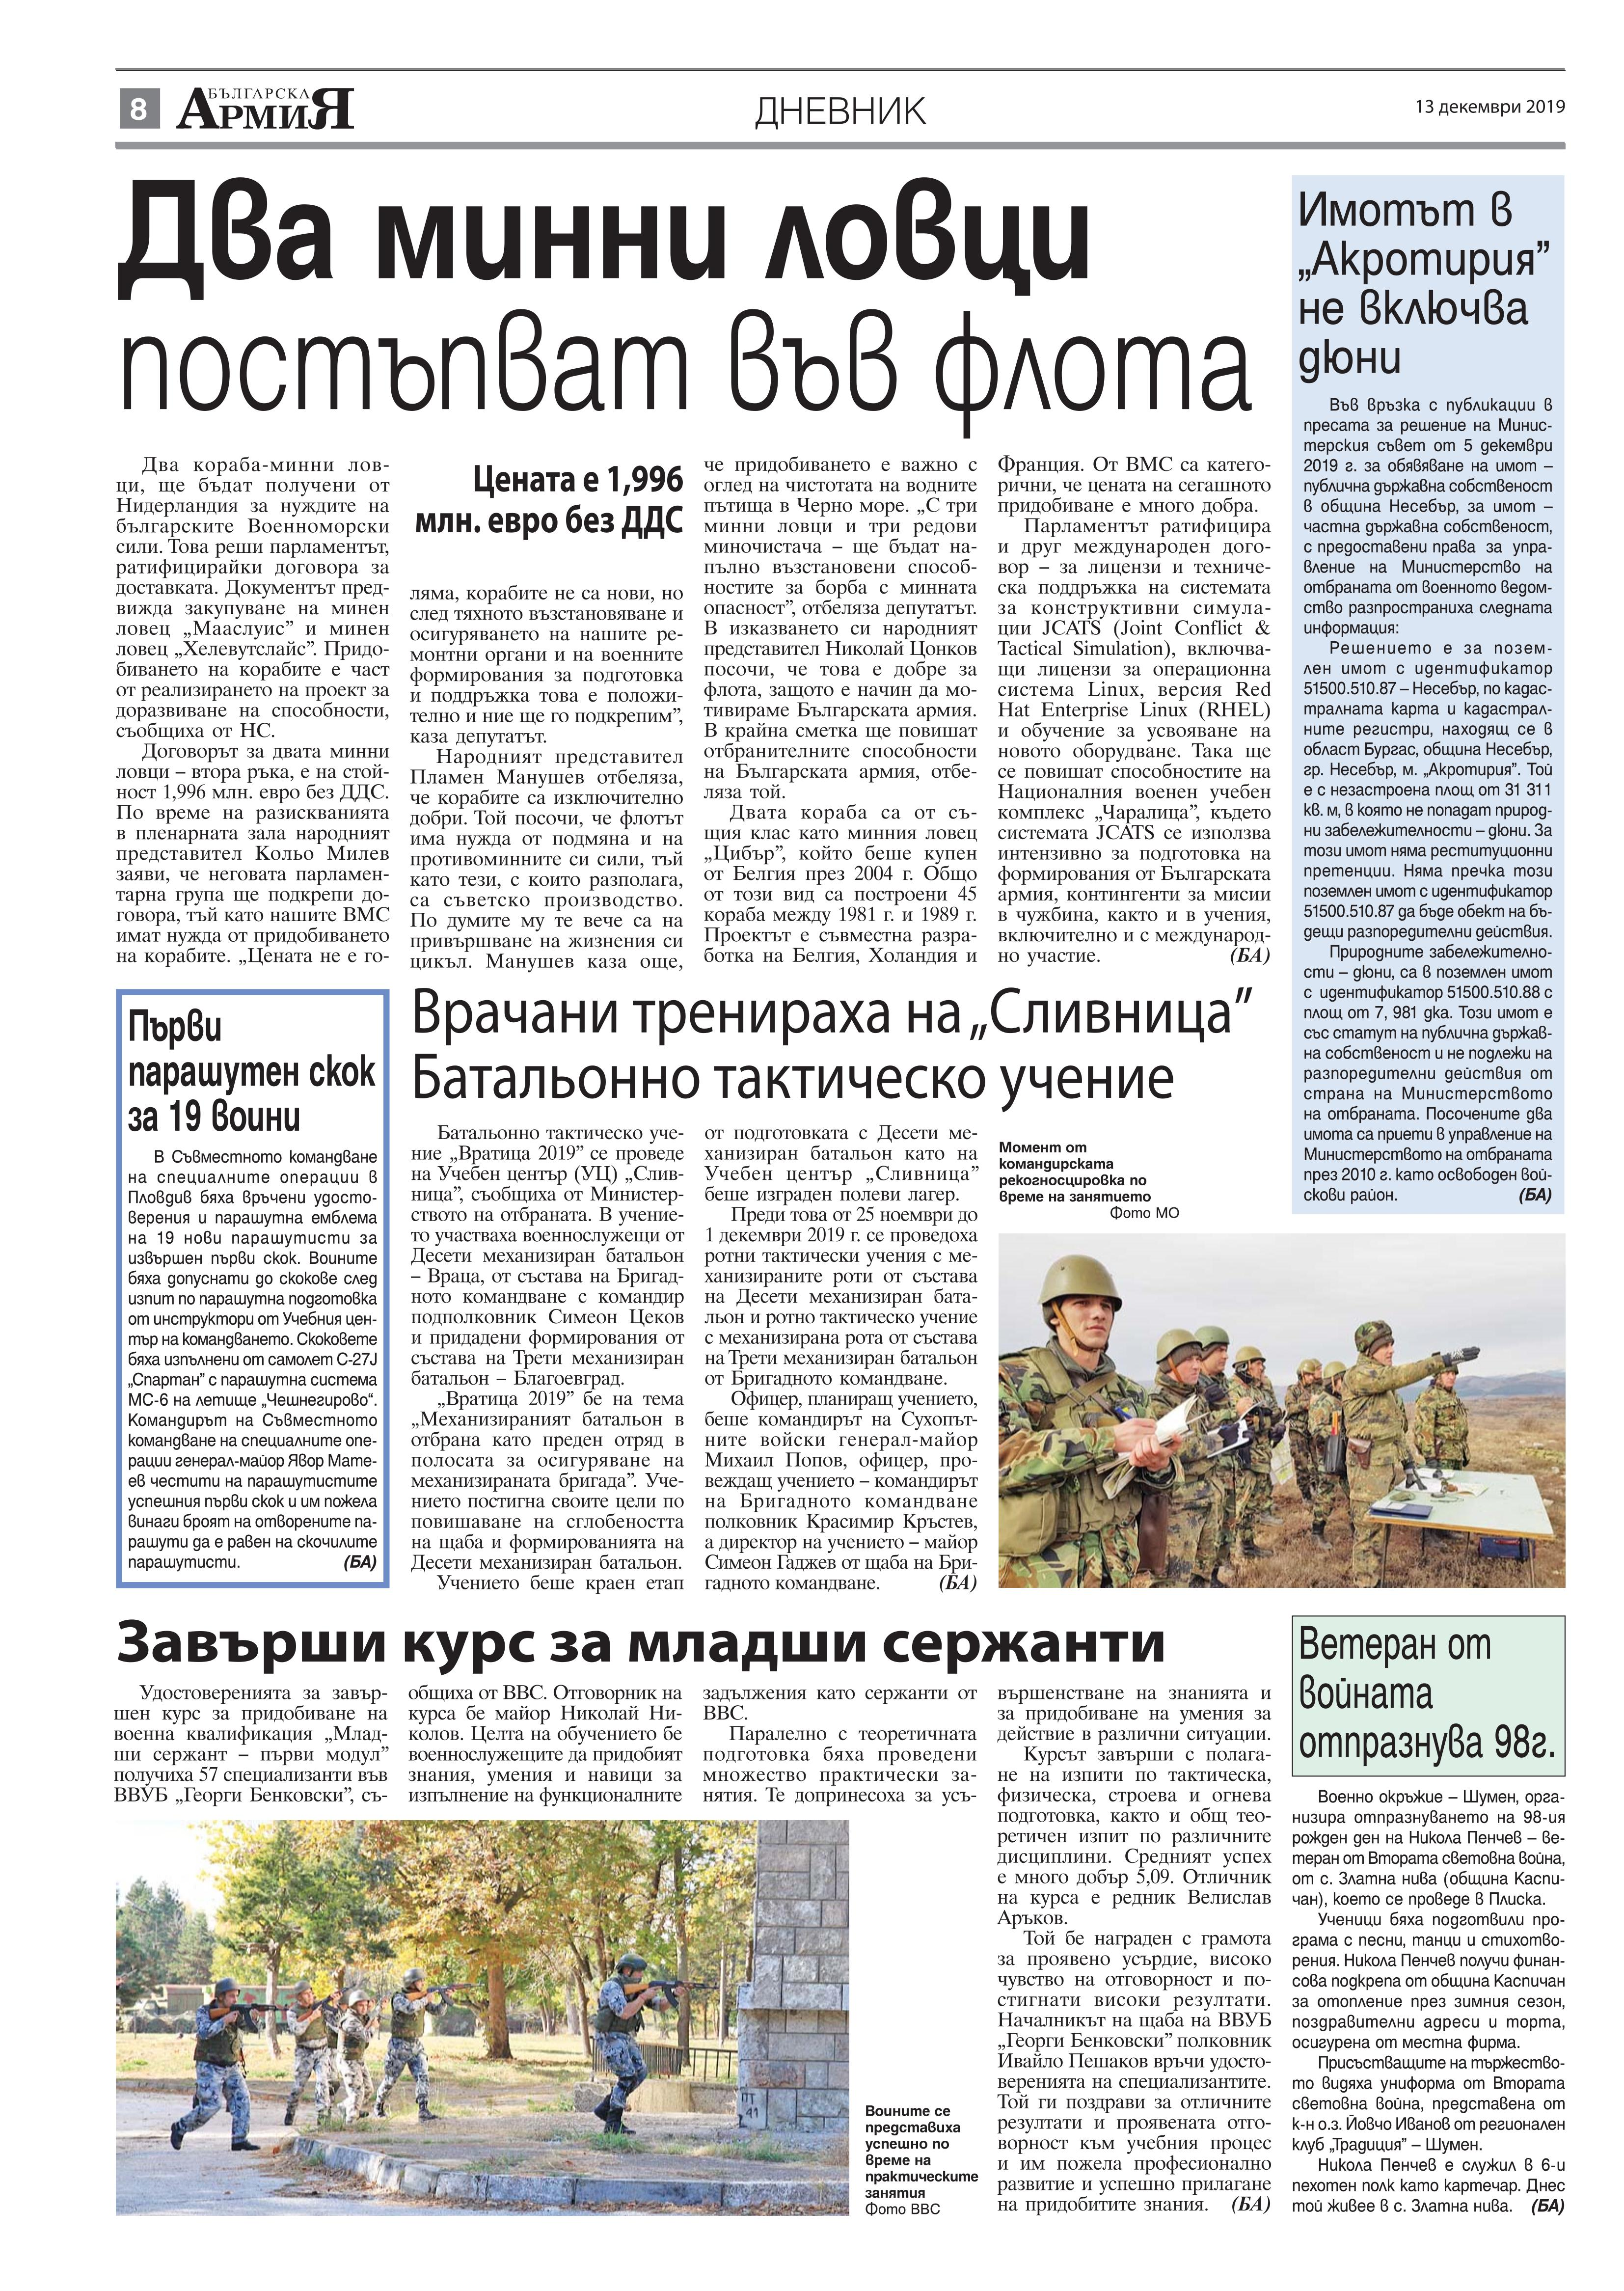 https://armymedia.bg/wp-content/uploads/2015/06/08.page1_-116.jpg